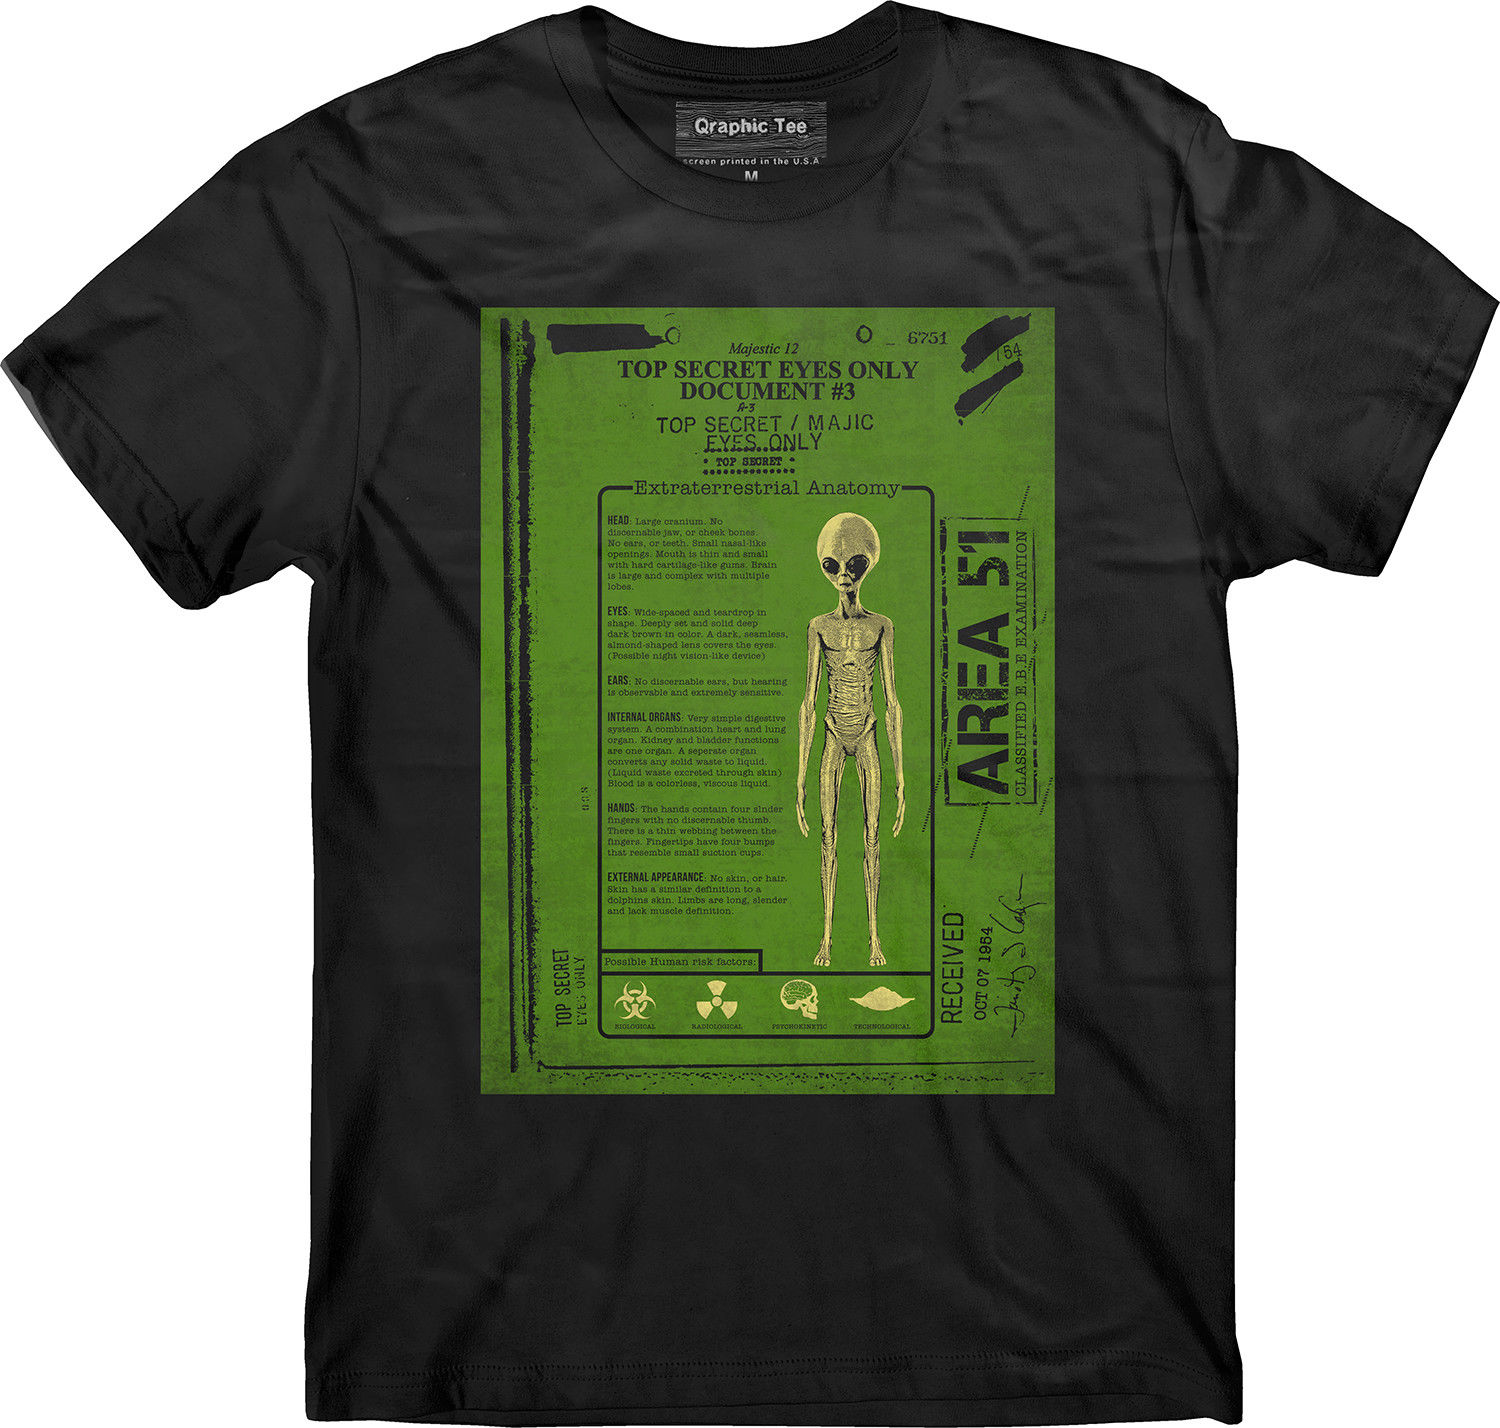 Area 51 T shirt, Alien Anatomy T shirt, Property of Area 51, Nevada ...